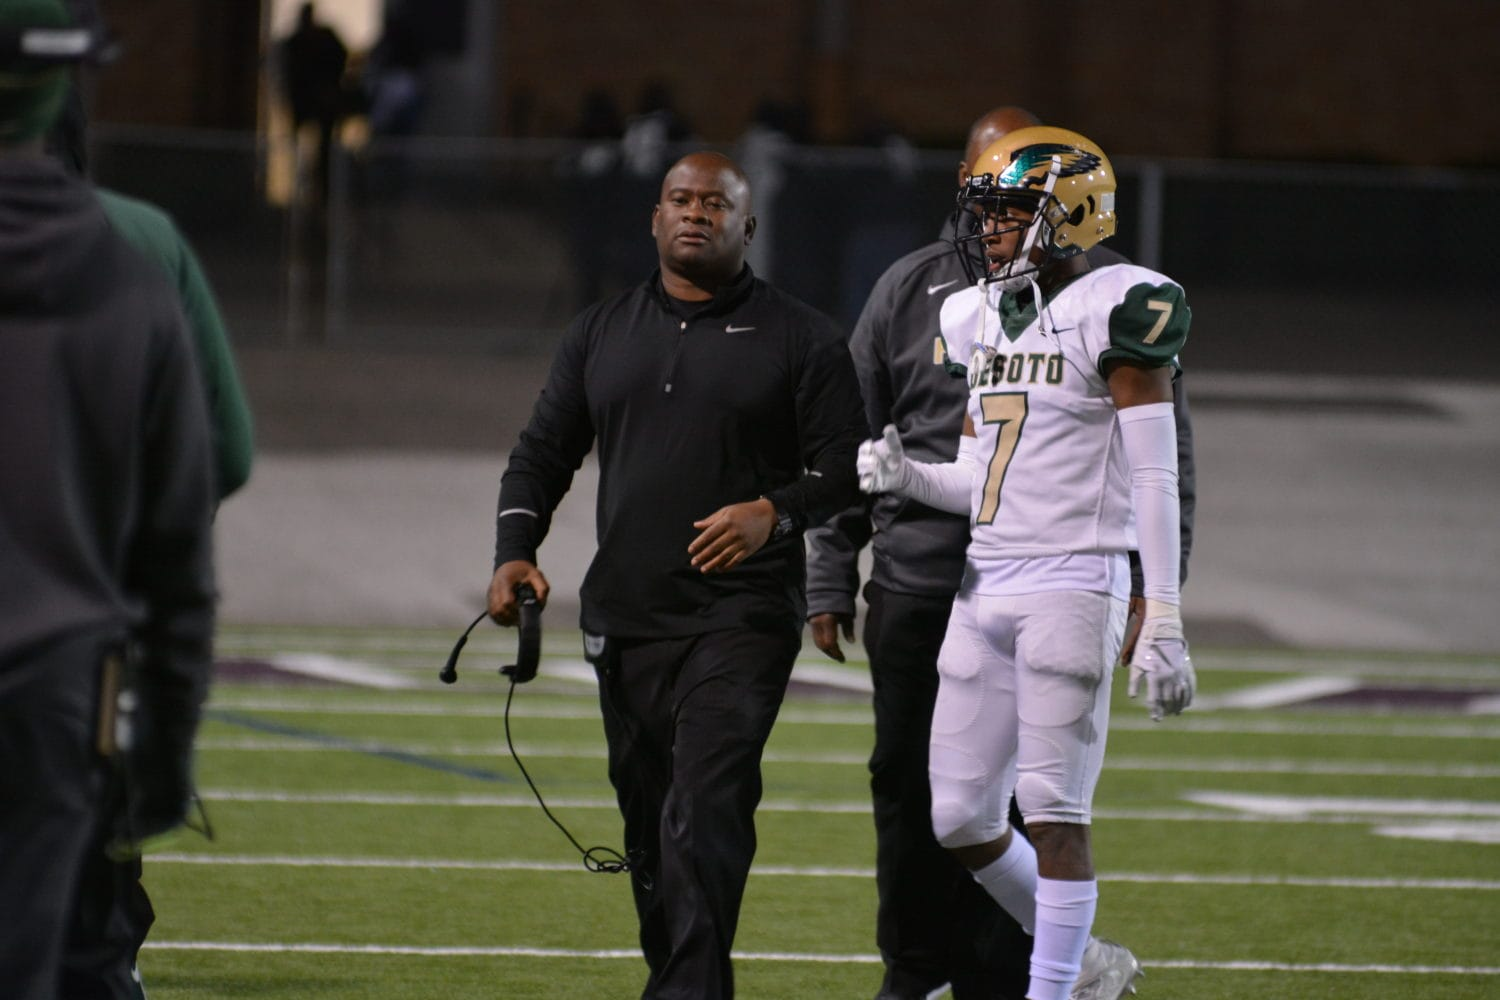 DeSoto head football coach